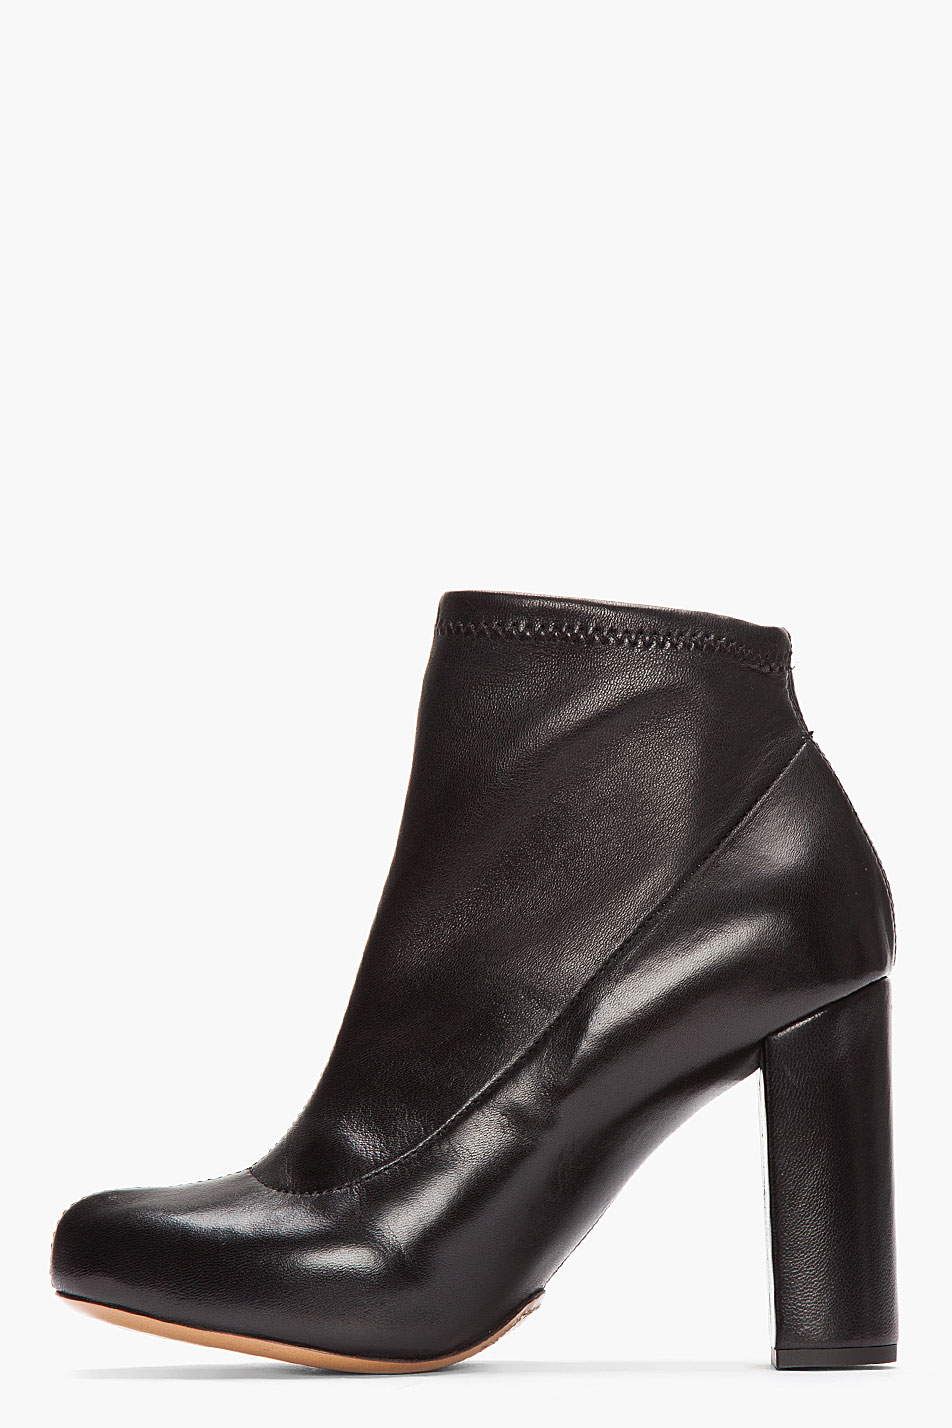 Chloé Leather Rounded-Toe Ankle Boots discount sneakernews FRLCnfq